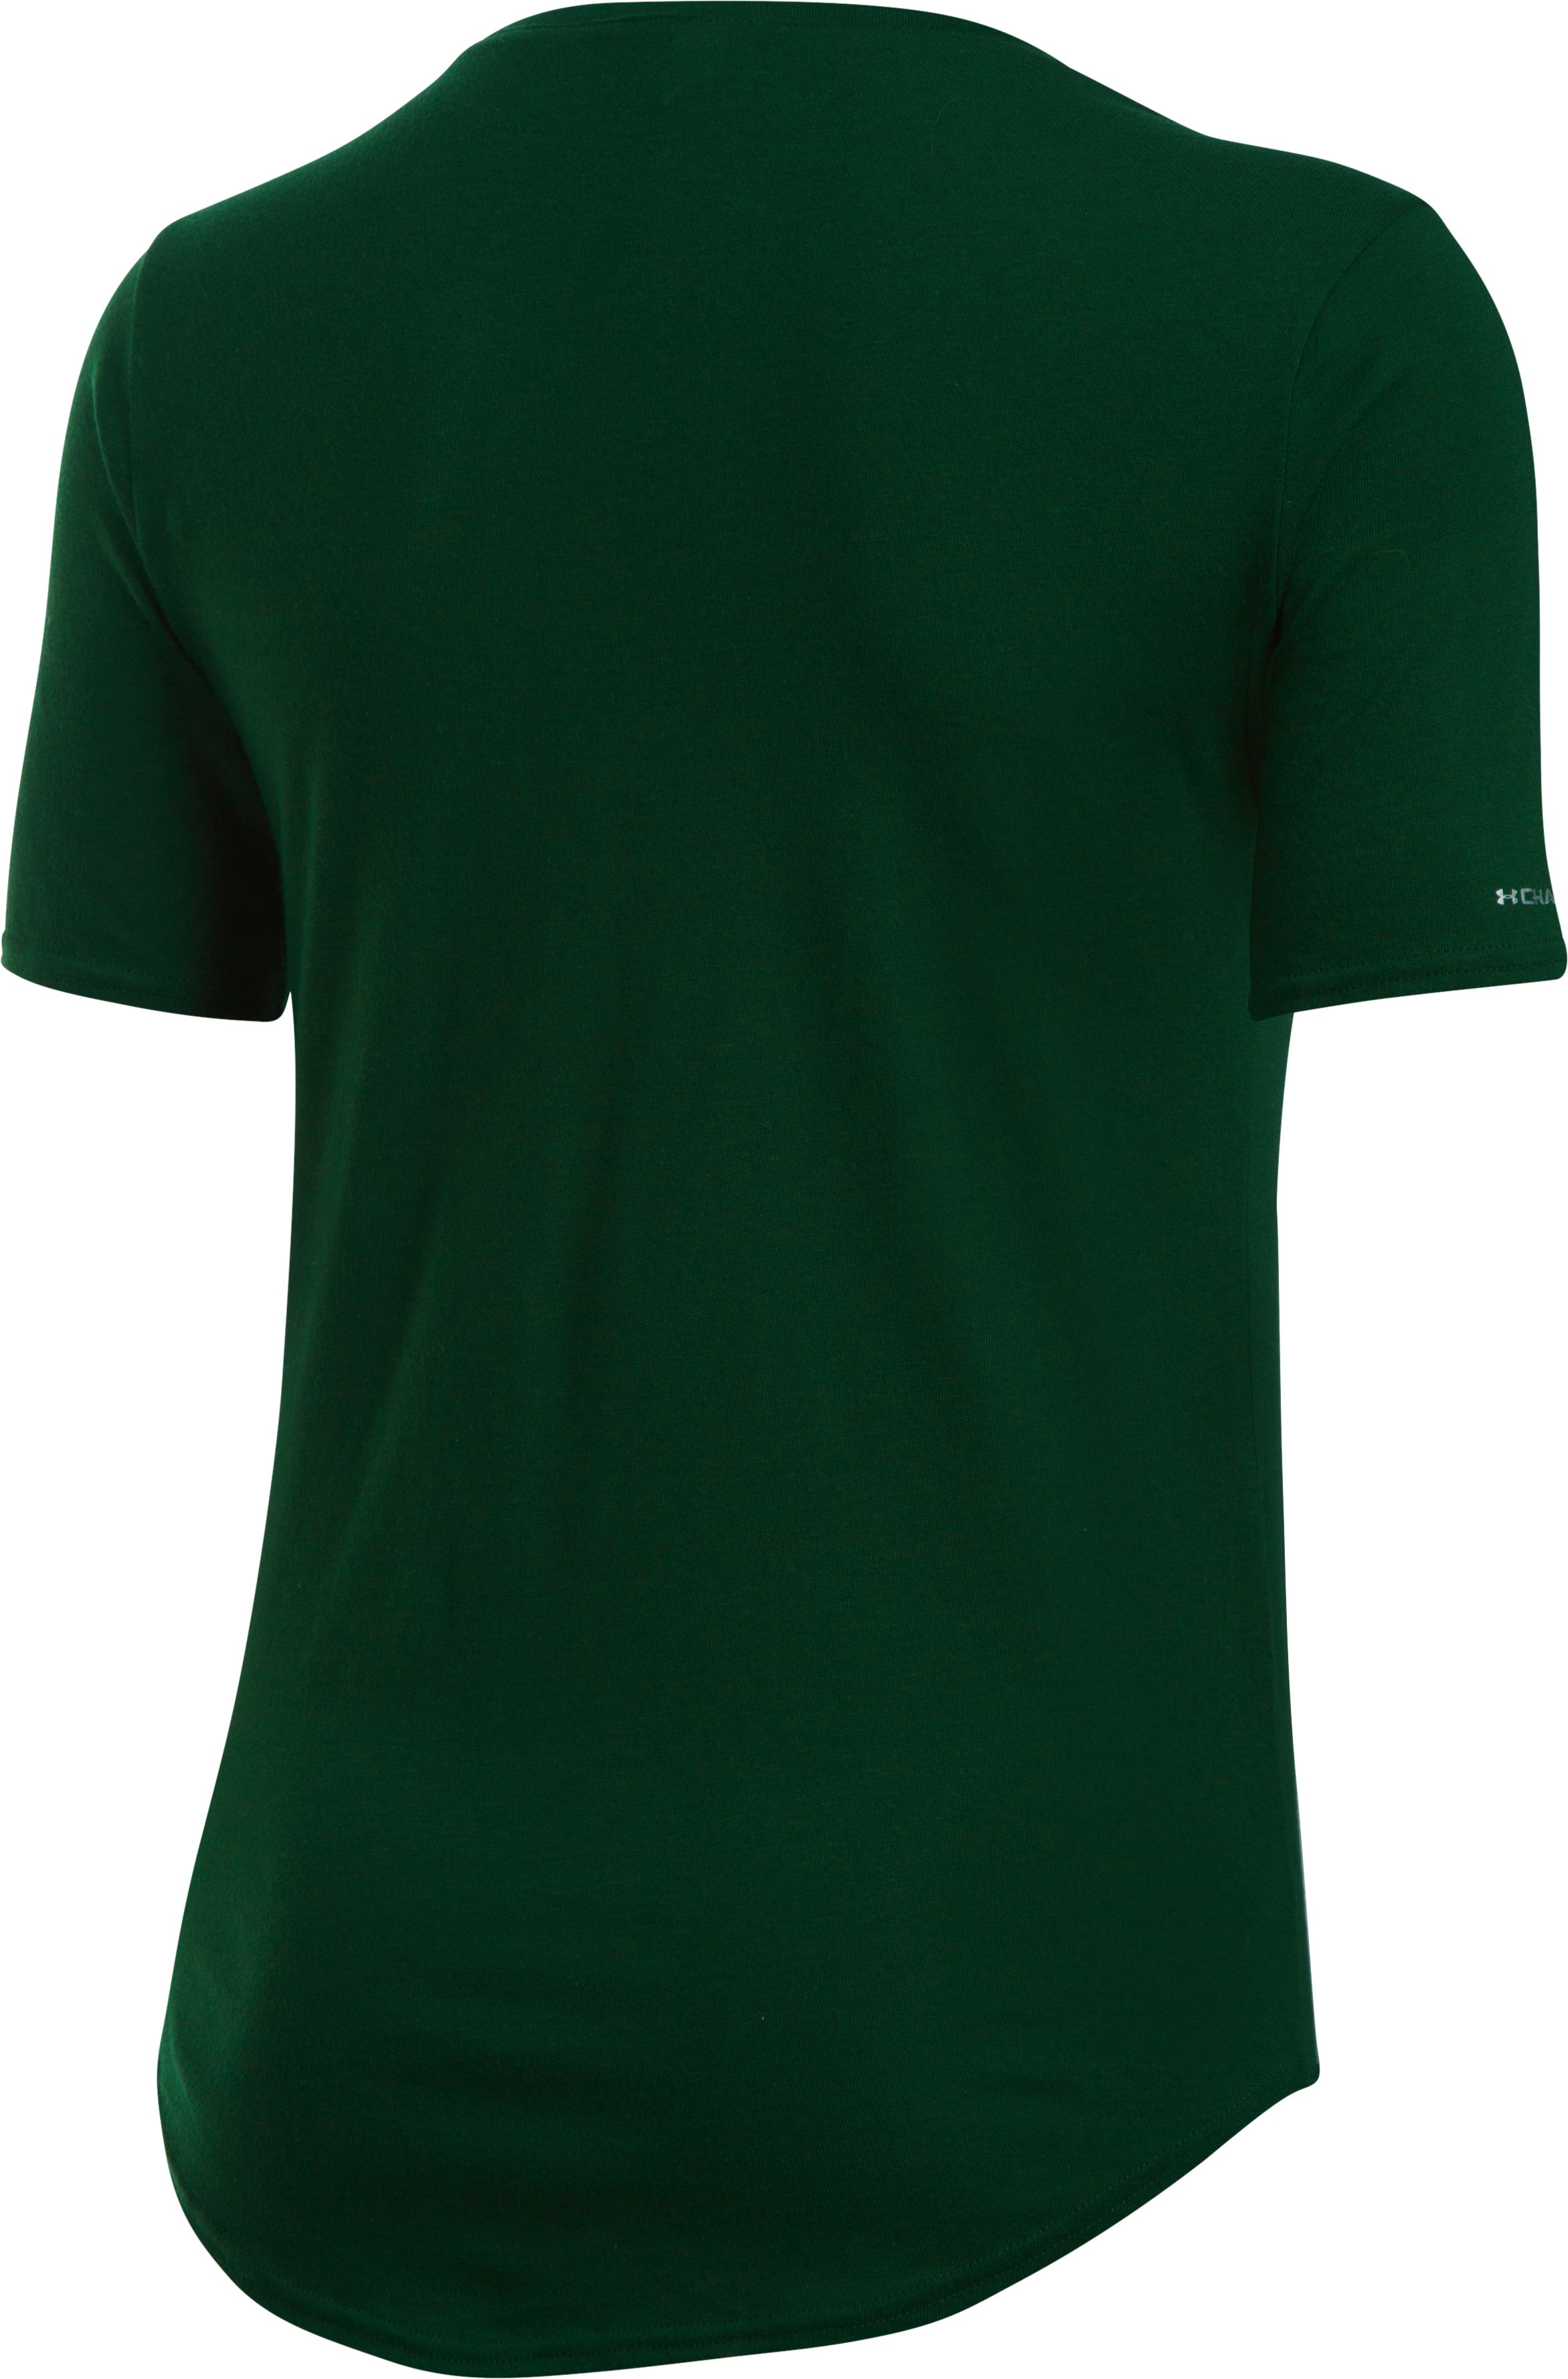 Women's South Florida Charged Cotton® Short Sleeve T-Shirt, Forest Green, undefined